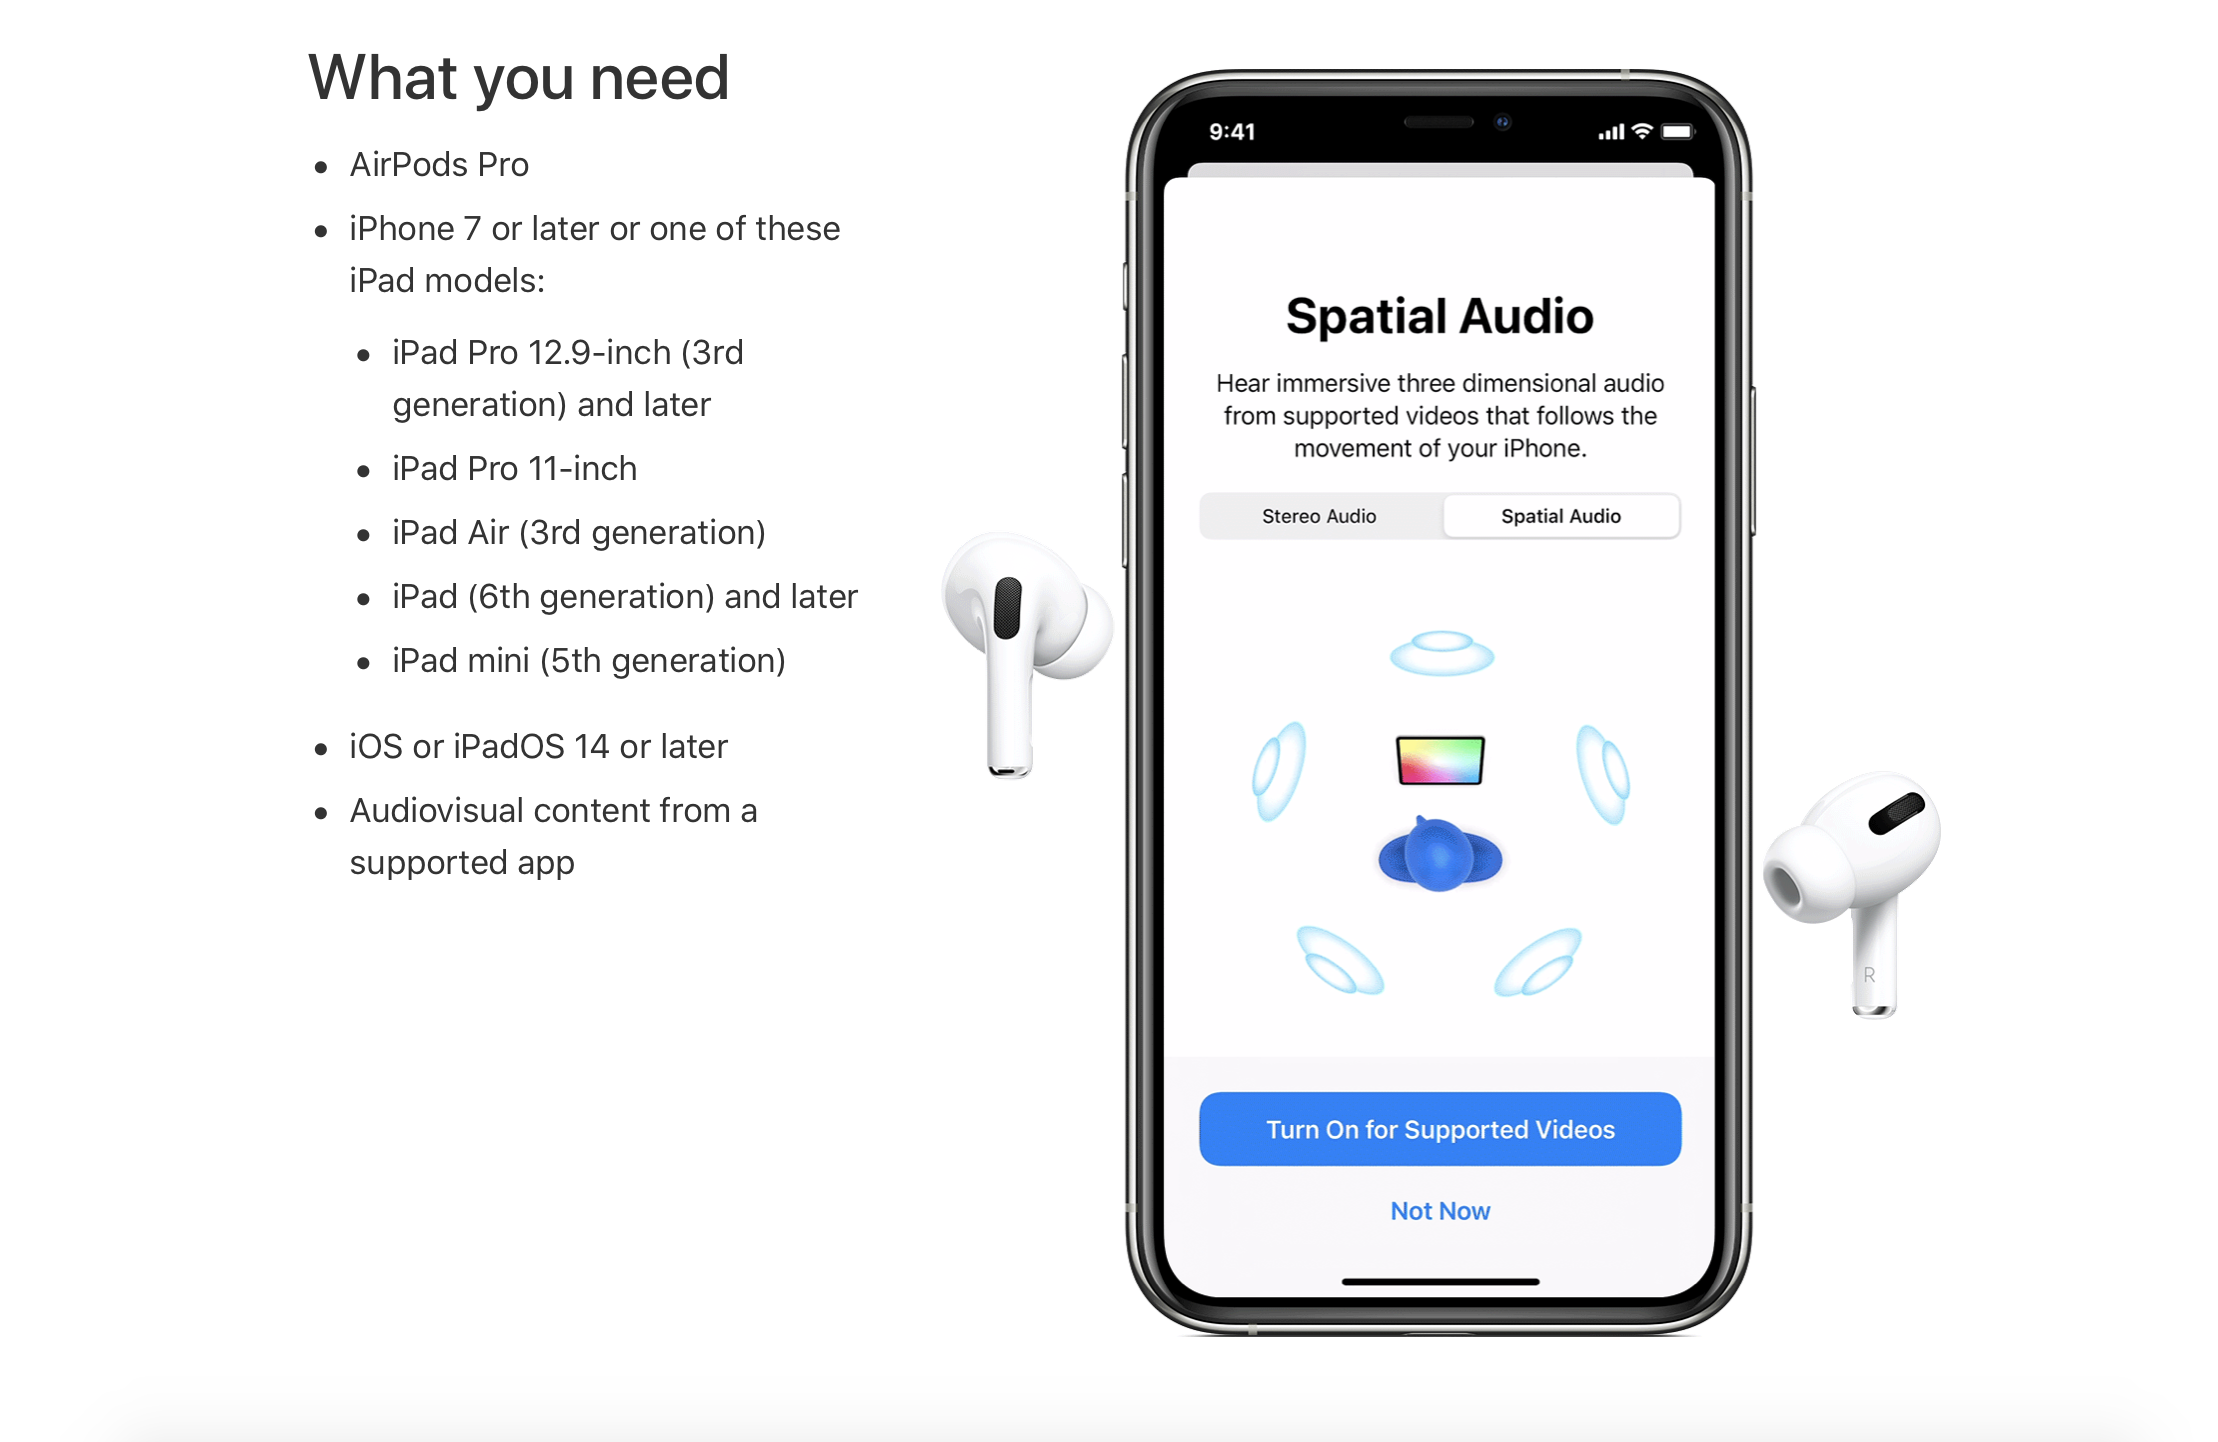 apple-spatial-audio-what-you-need.png